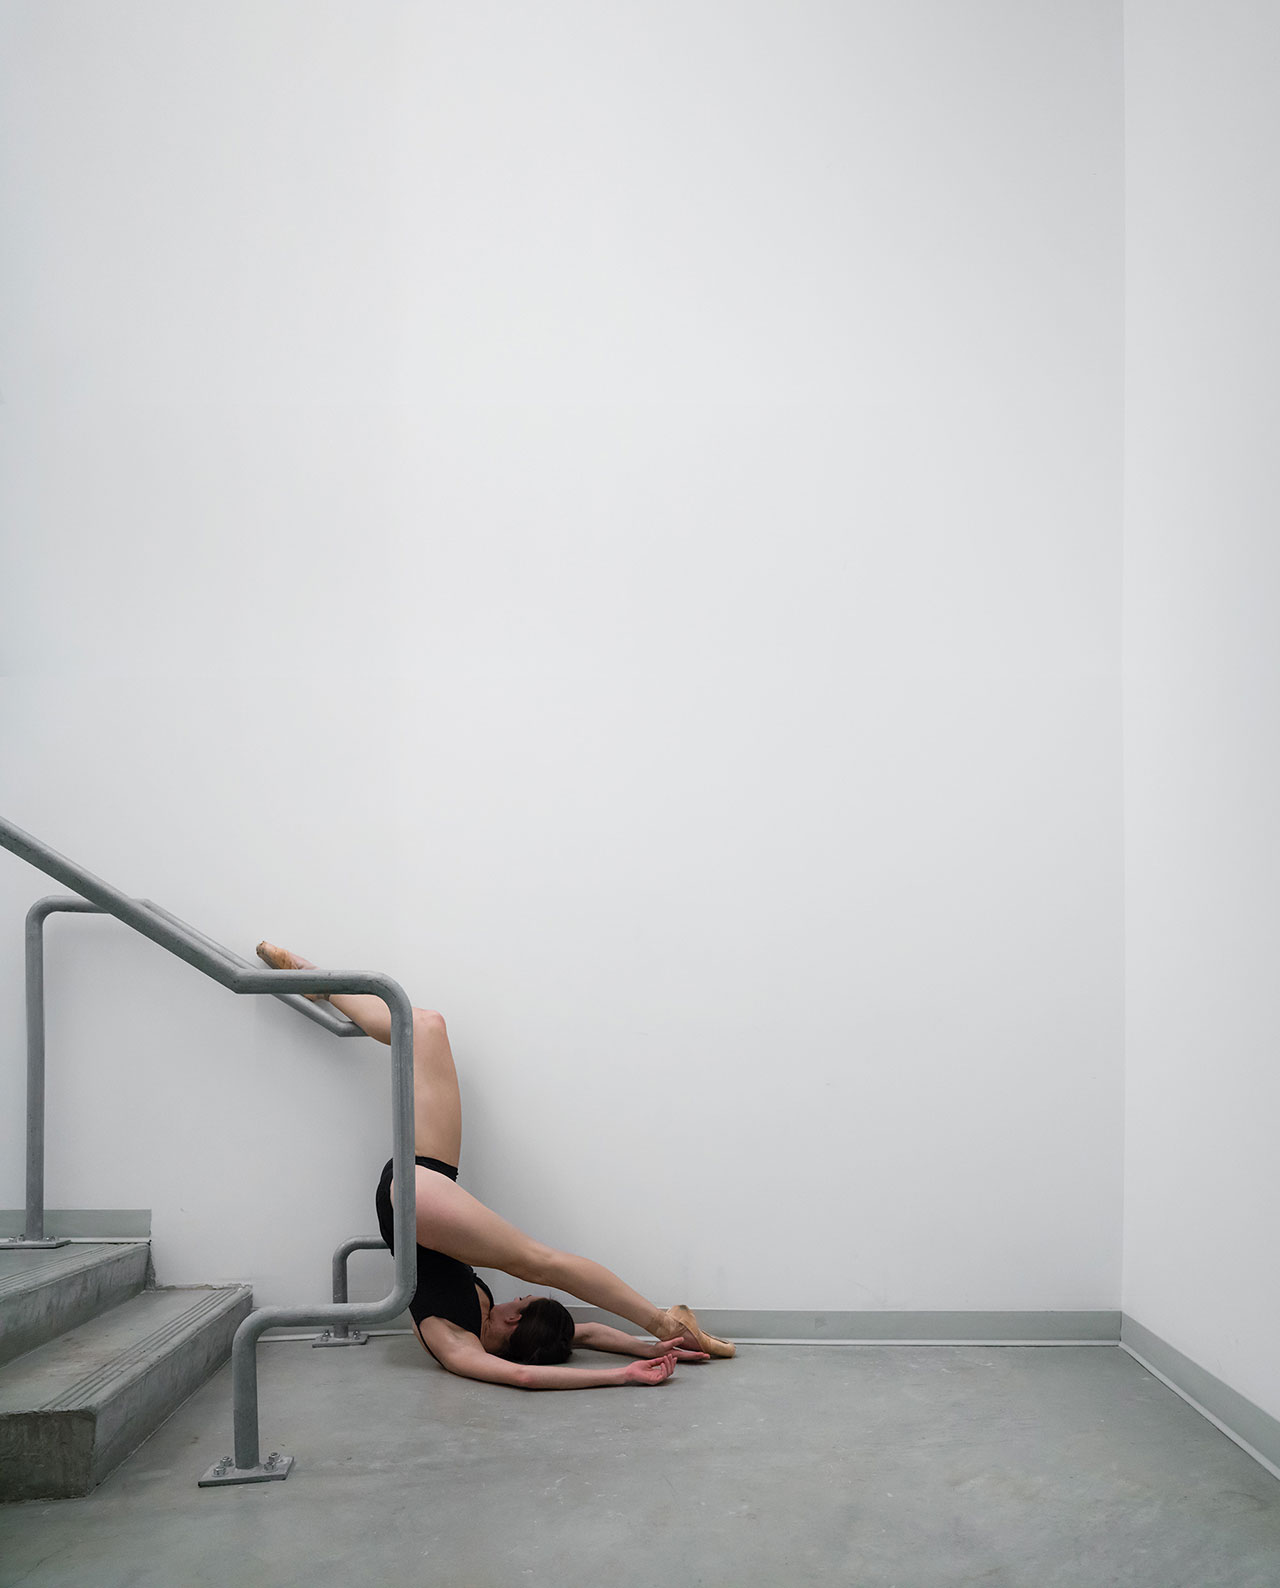 Location: Valley Performing Arts Center | Dancer Anna Gerberich | Photo © Minh Tran from the series #CamerasandDancers.